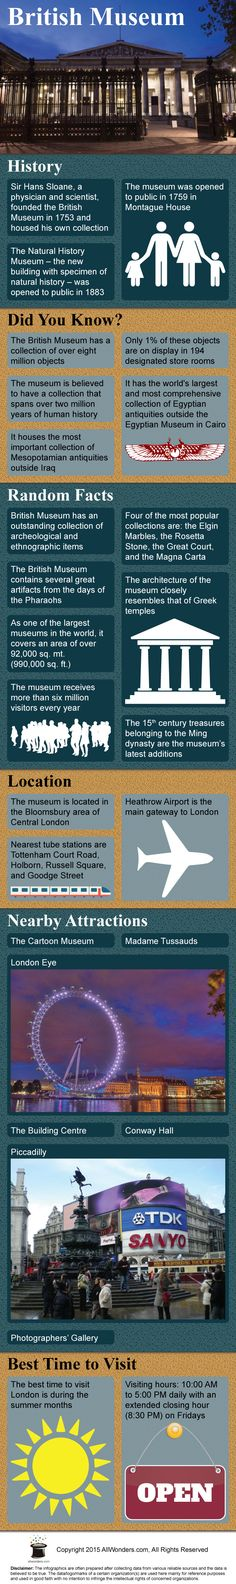 British Museum Infographic  Want to see the world and know someone looking to make a hire? Contact me, carlos@recruitingforgood.com